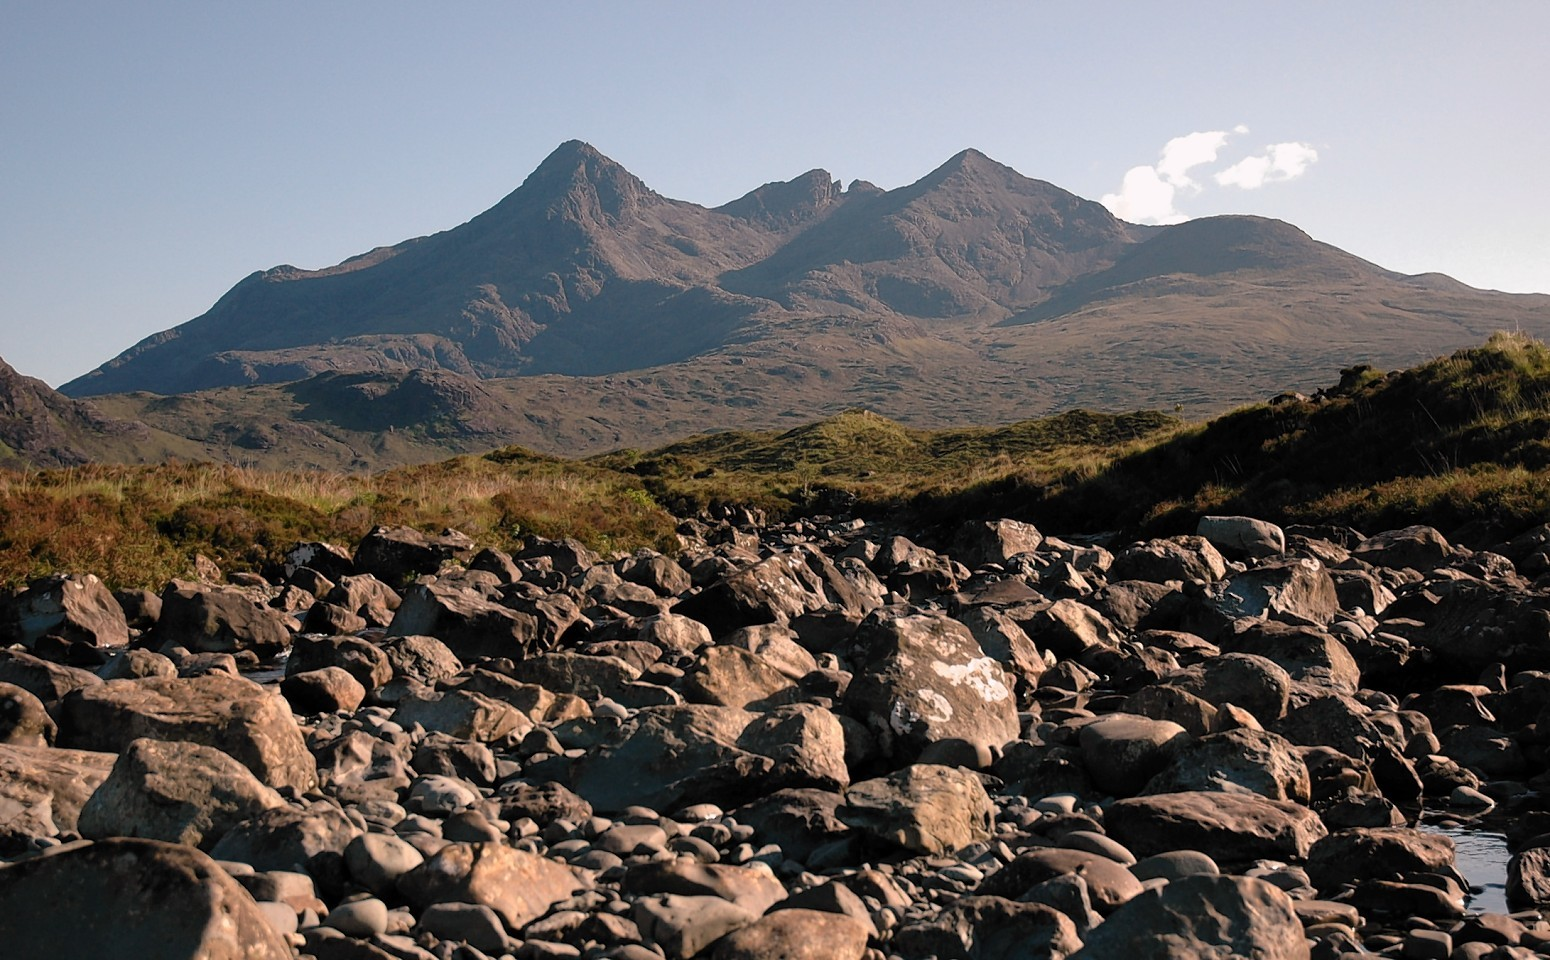 The Cuillin range